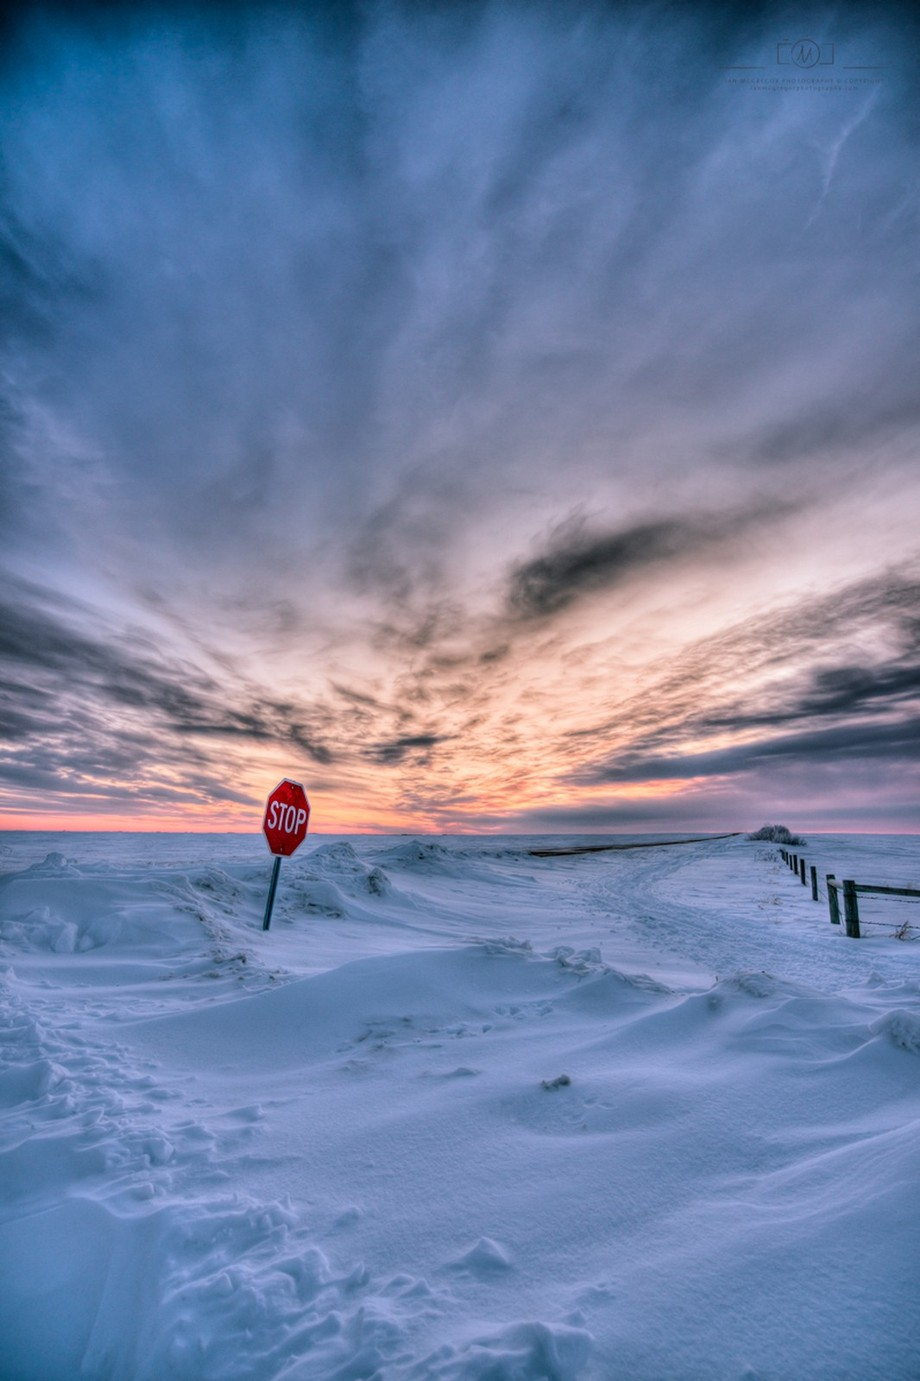 Winter Junction by IanDMcGregor - Billboards And Other Signs Photo Contest